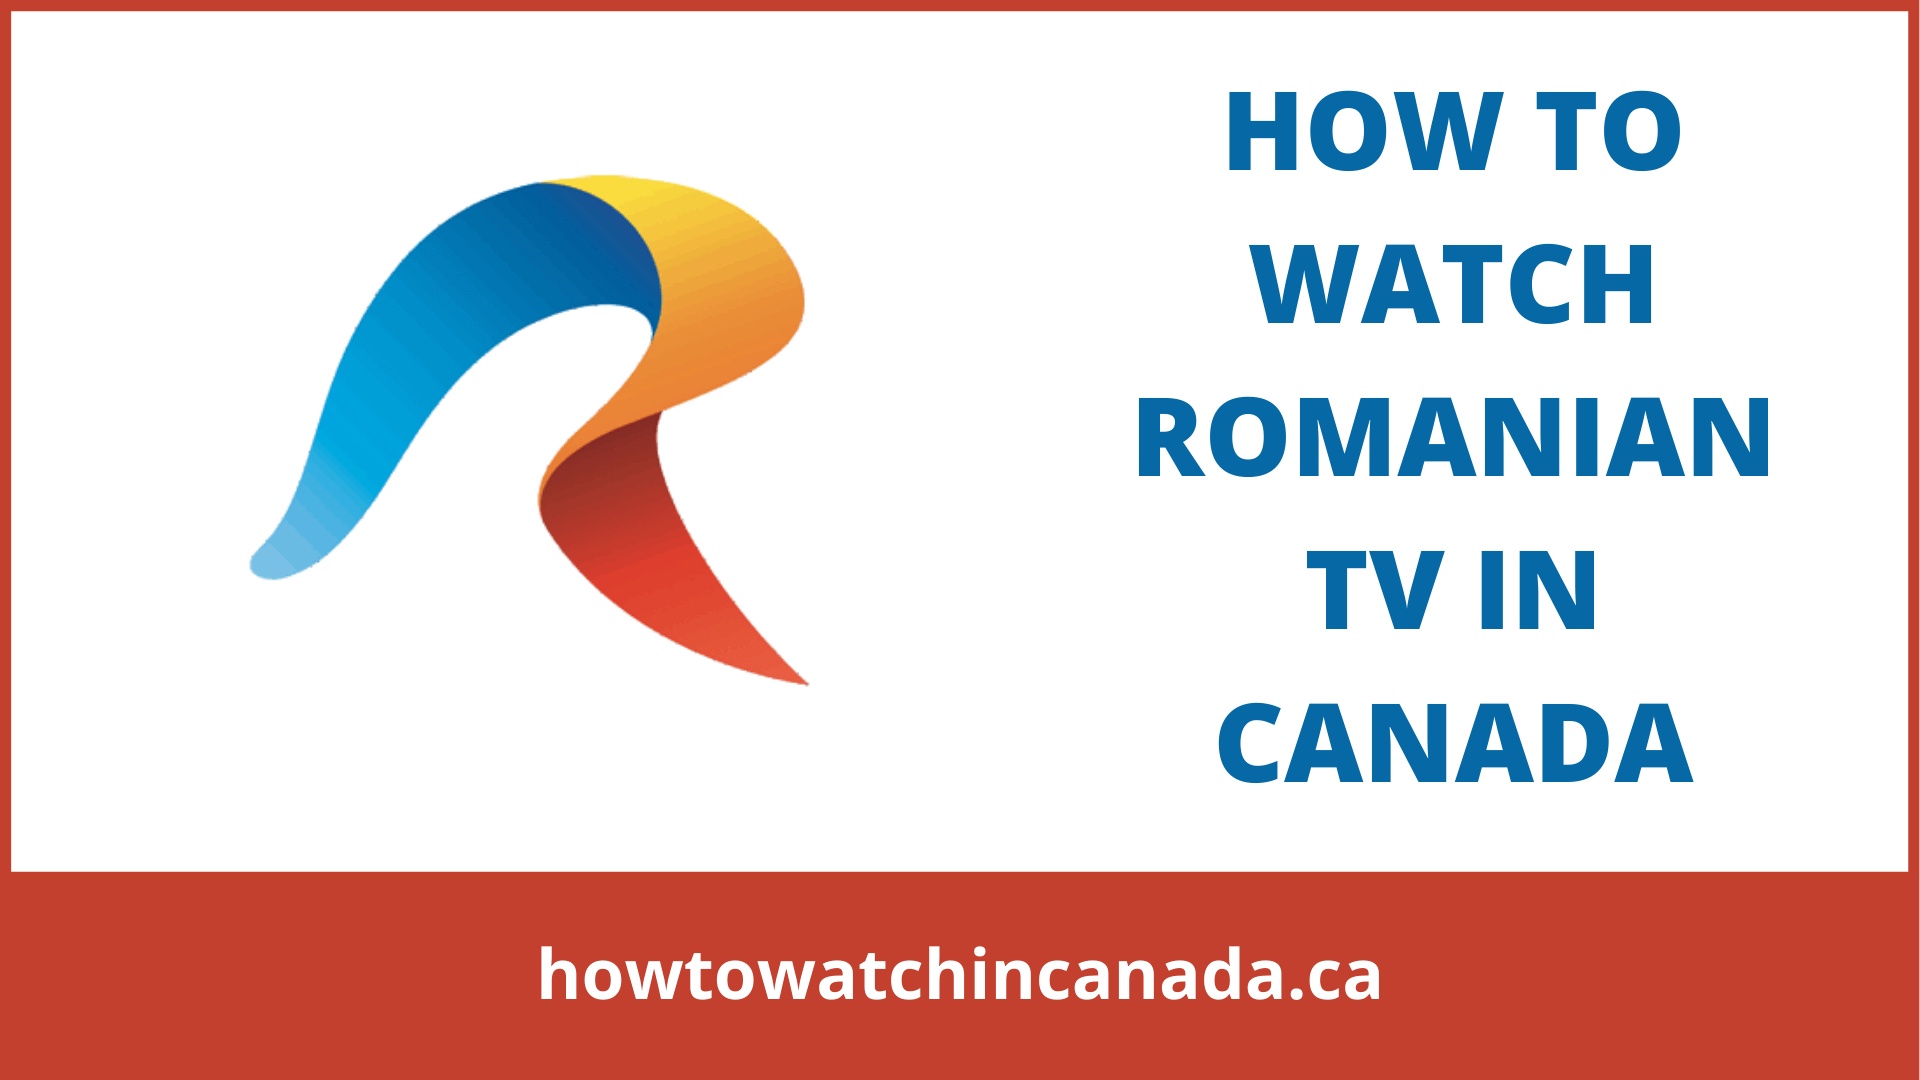 romanian-tv-feat-how-to-watch-in-canada